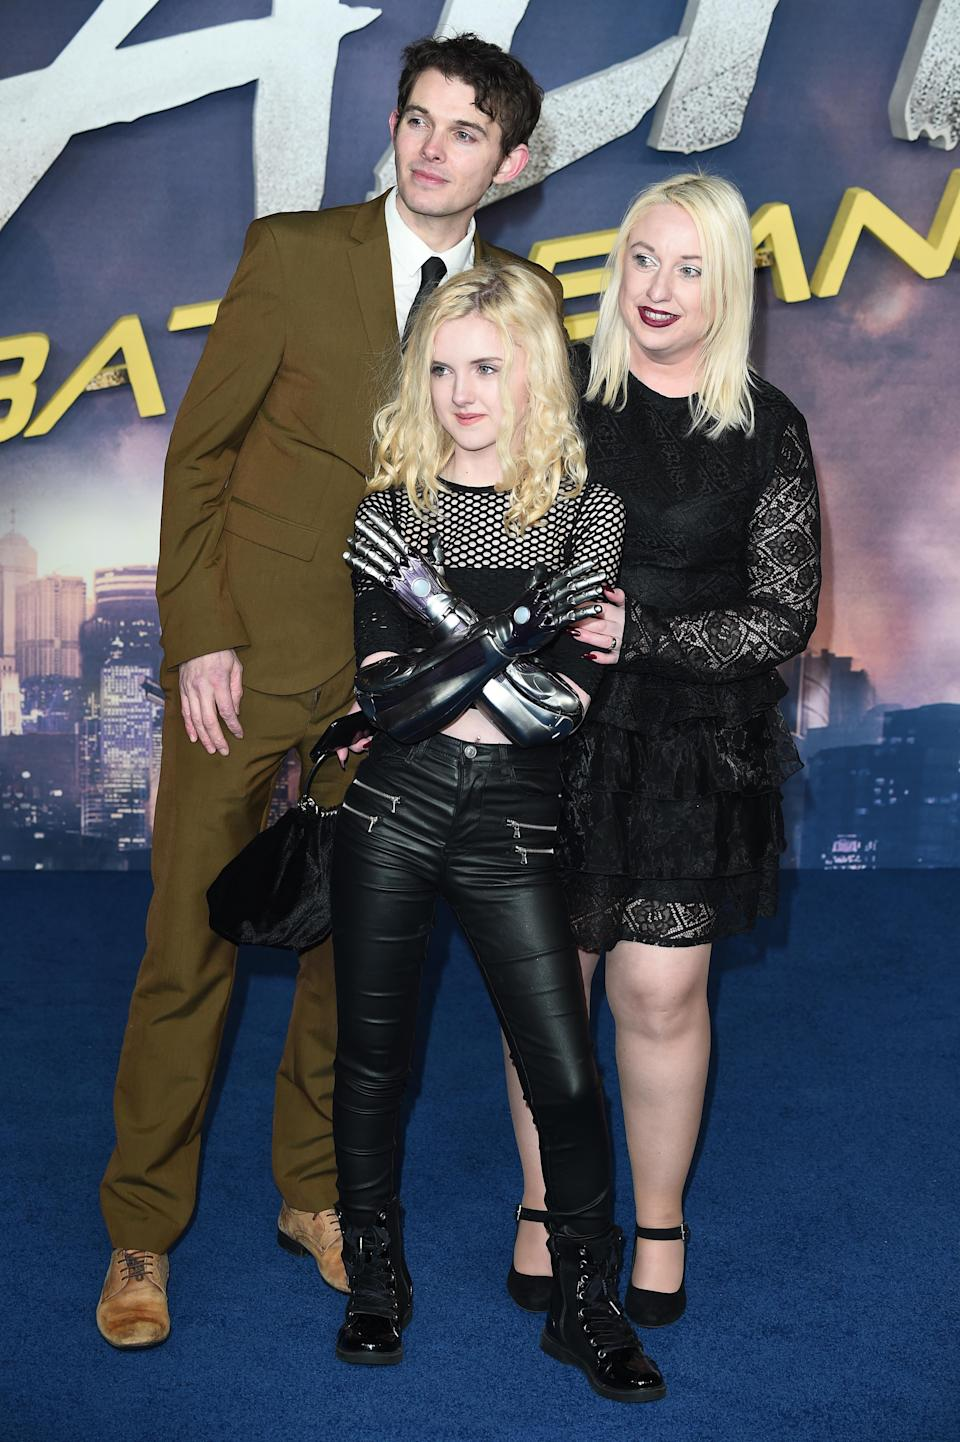 Tilly with her new bionic arms at the U.K. premiere of Alita: Battle Angel. Photo: Getty